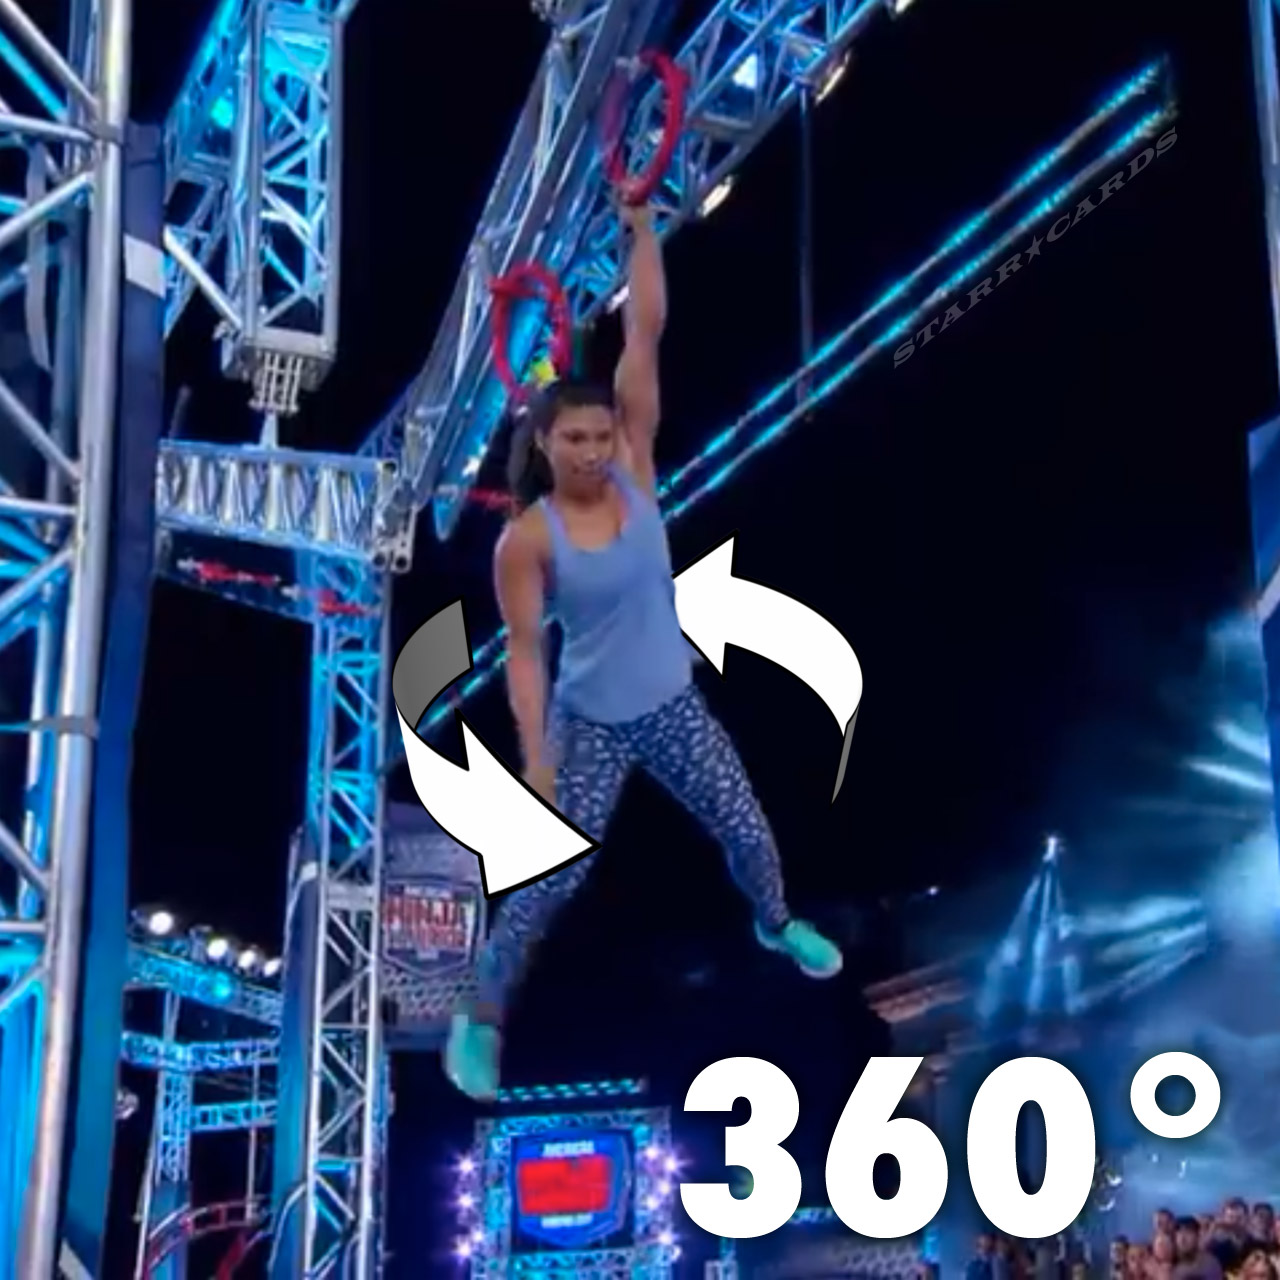 Meagan Martin impresses with 360 degree dismount on American Ninja Warrior